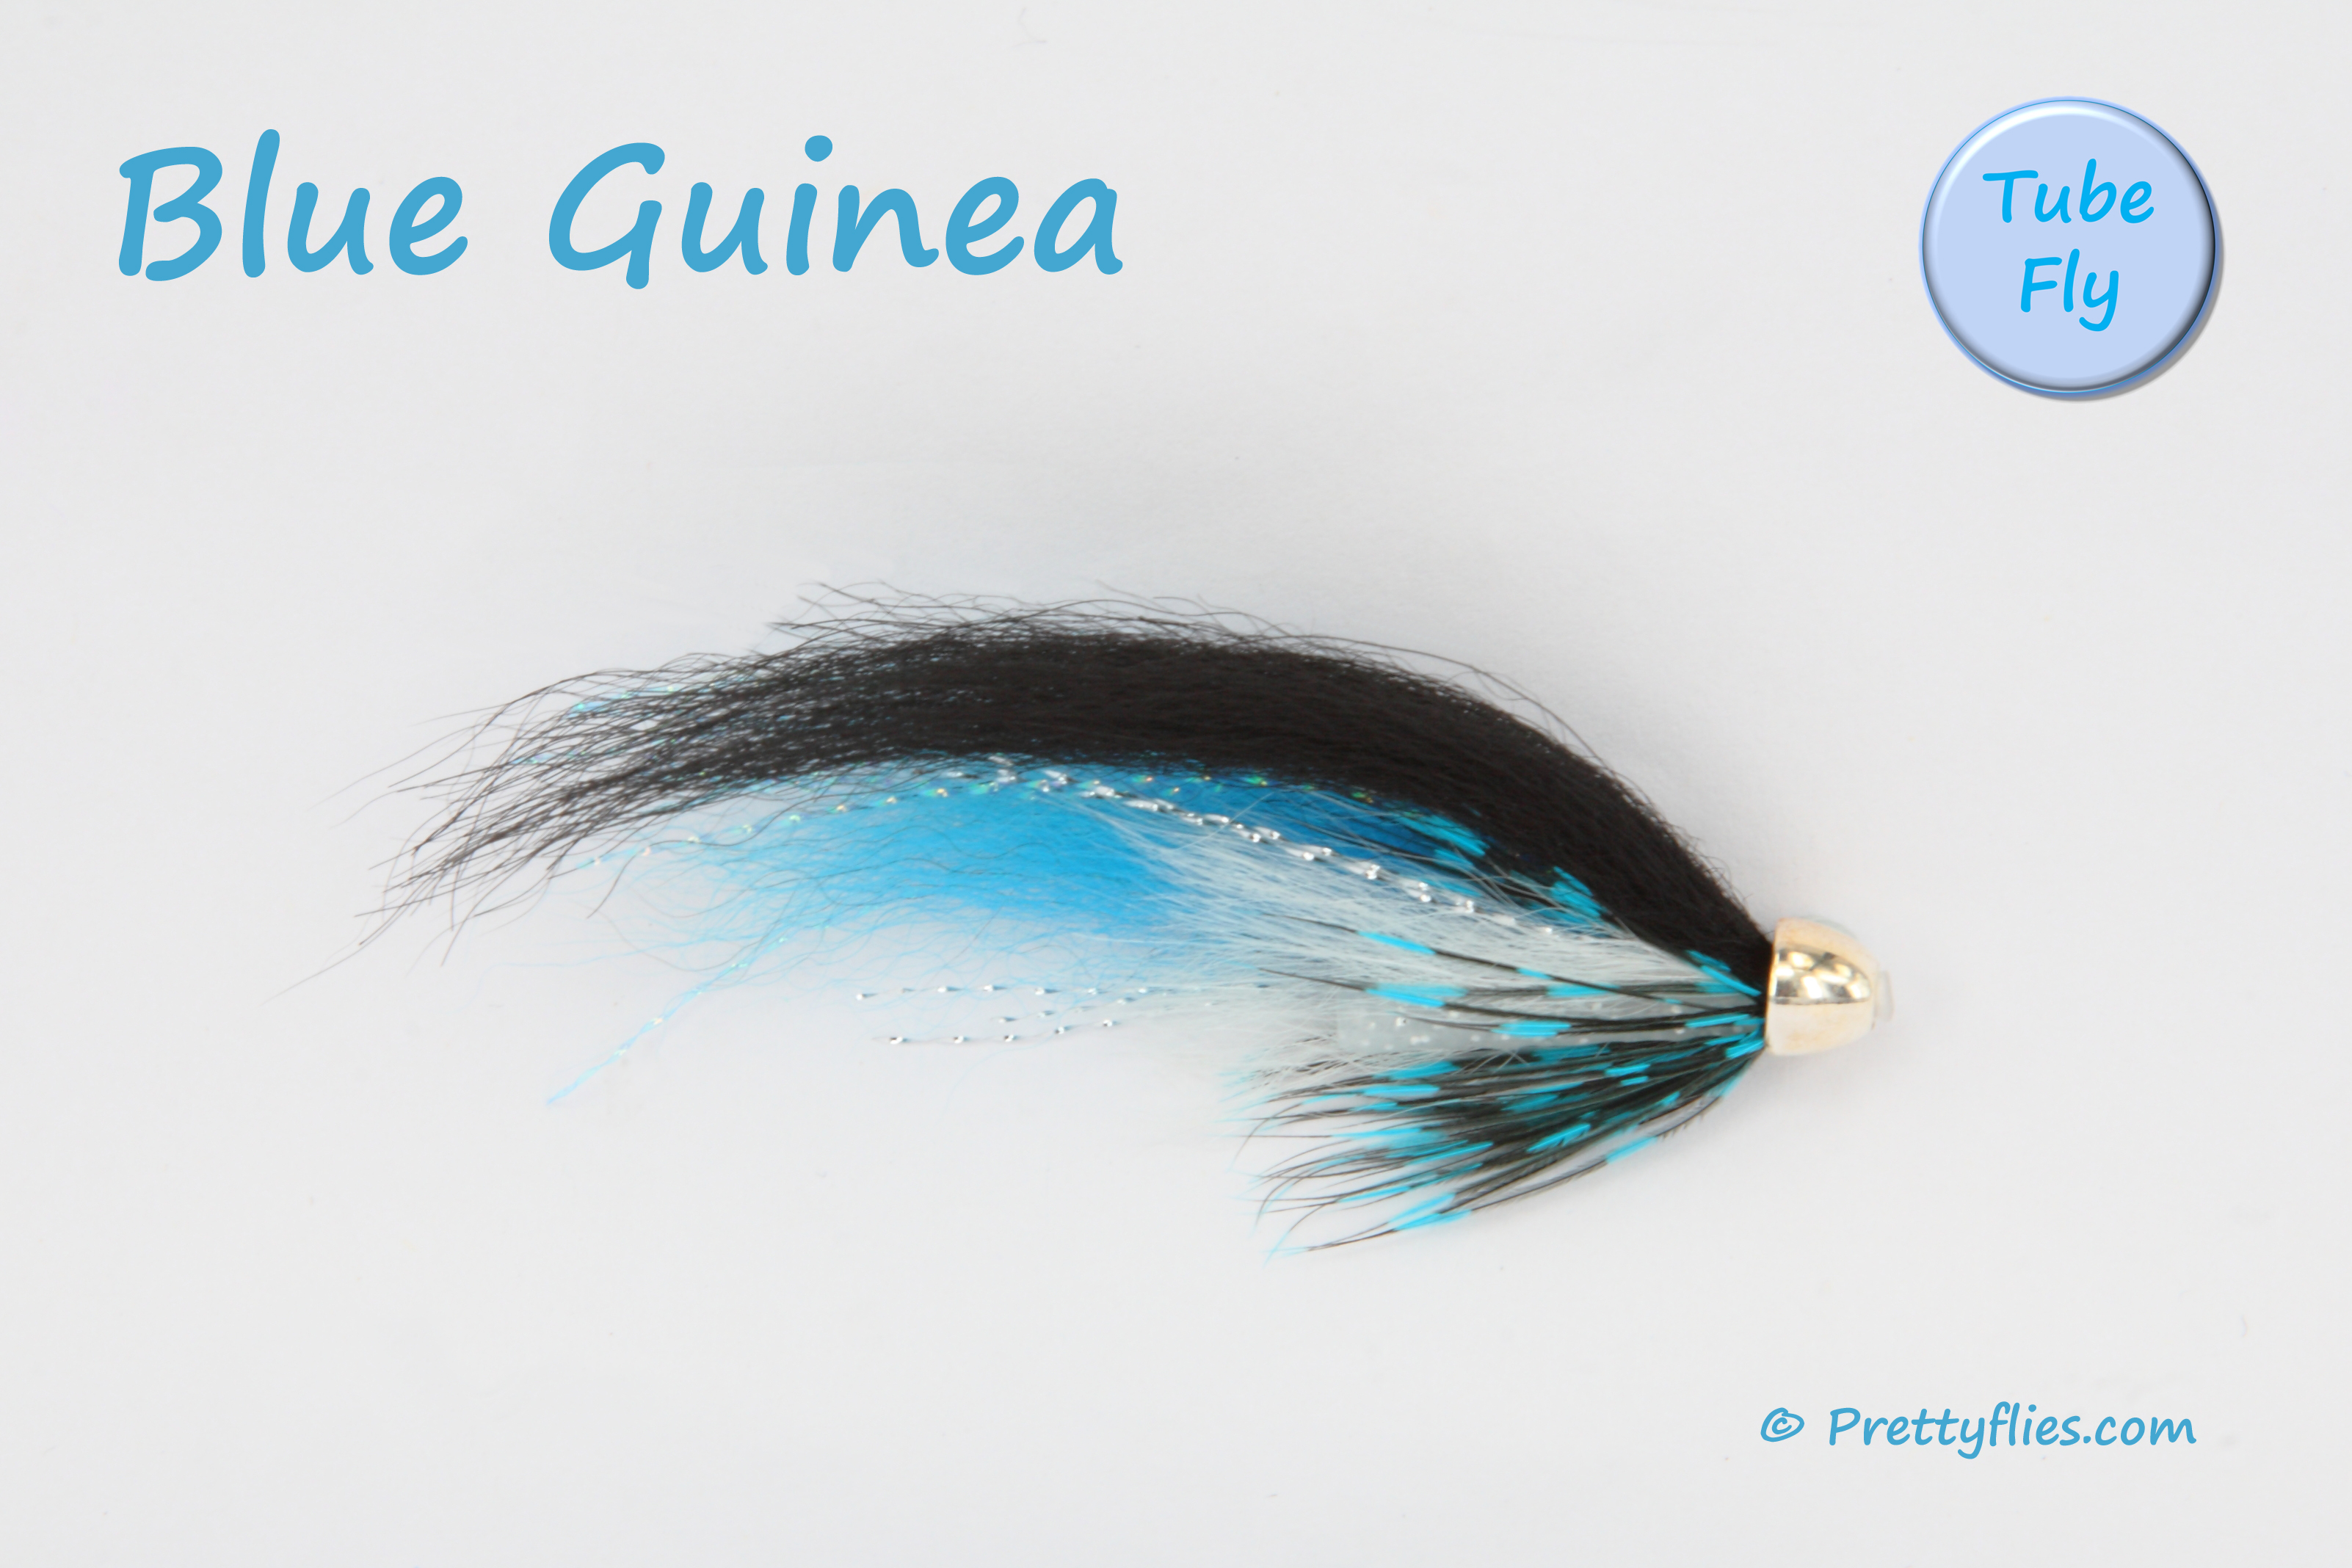 Blue Guinea copy.jpg